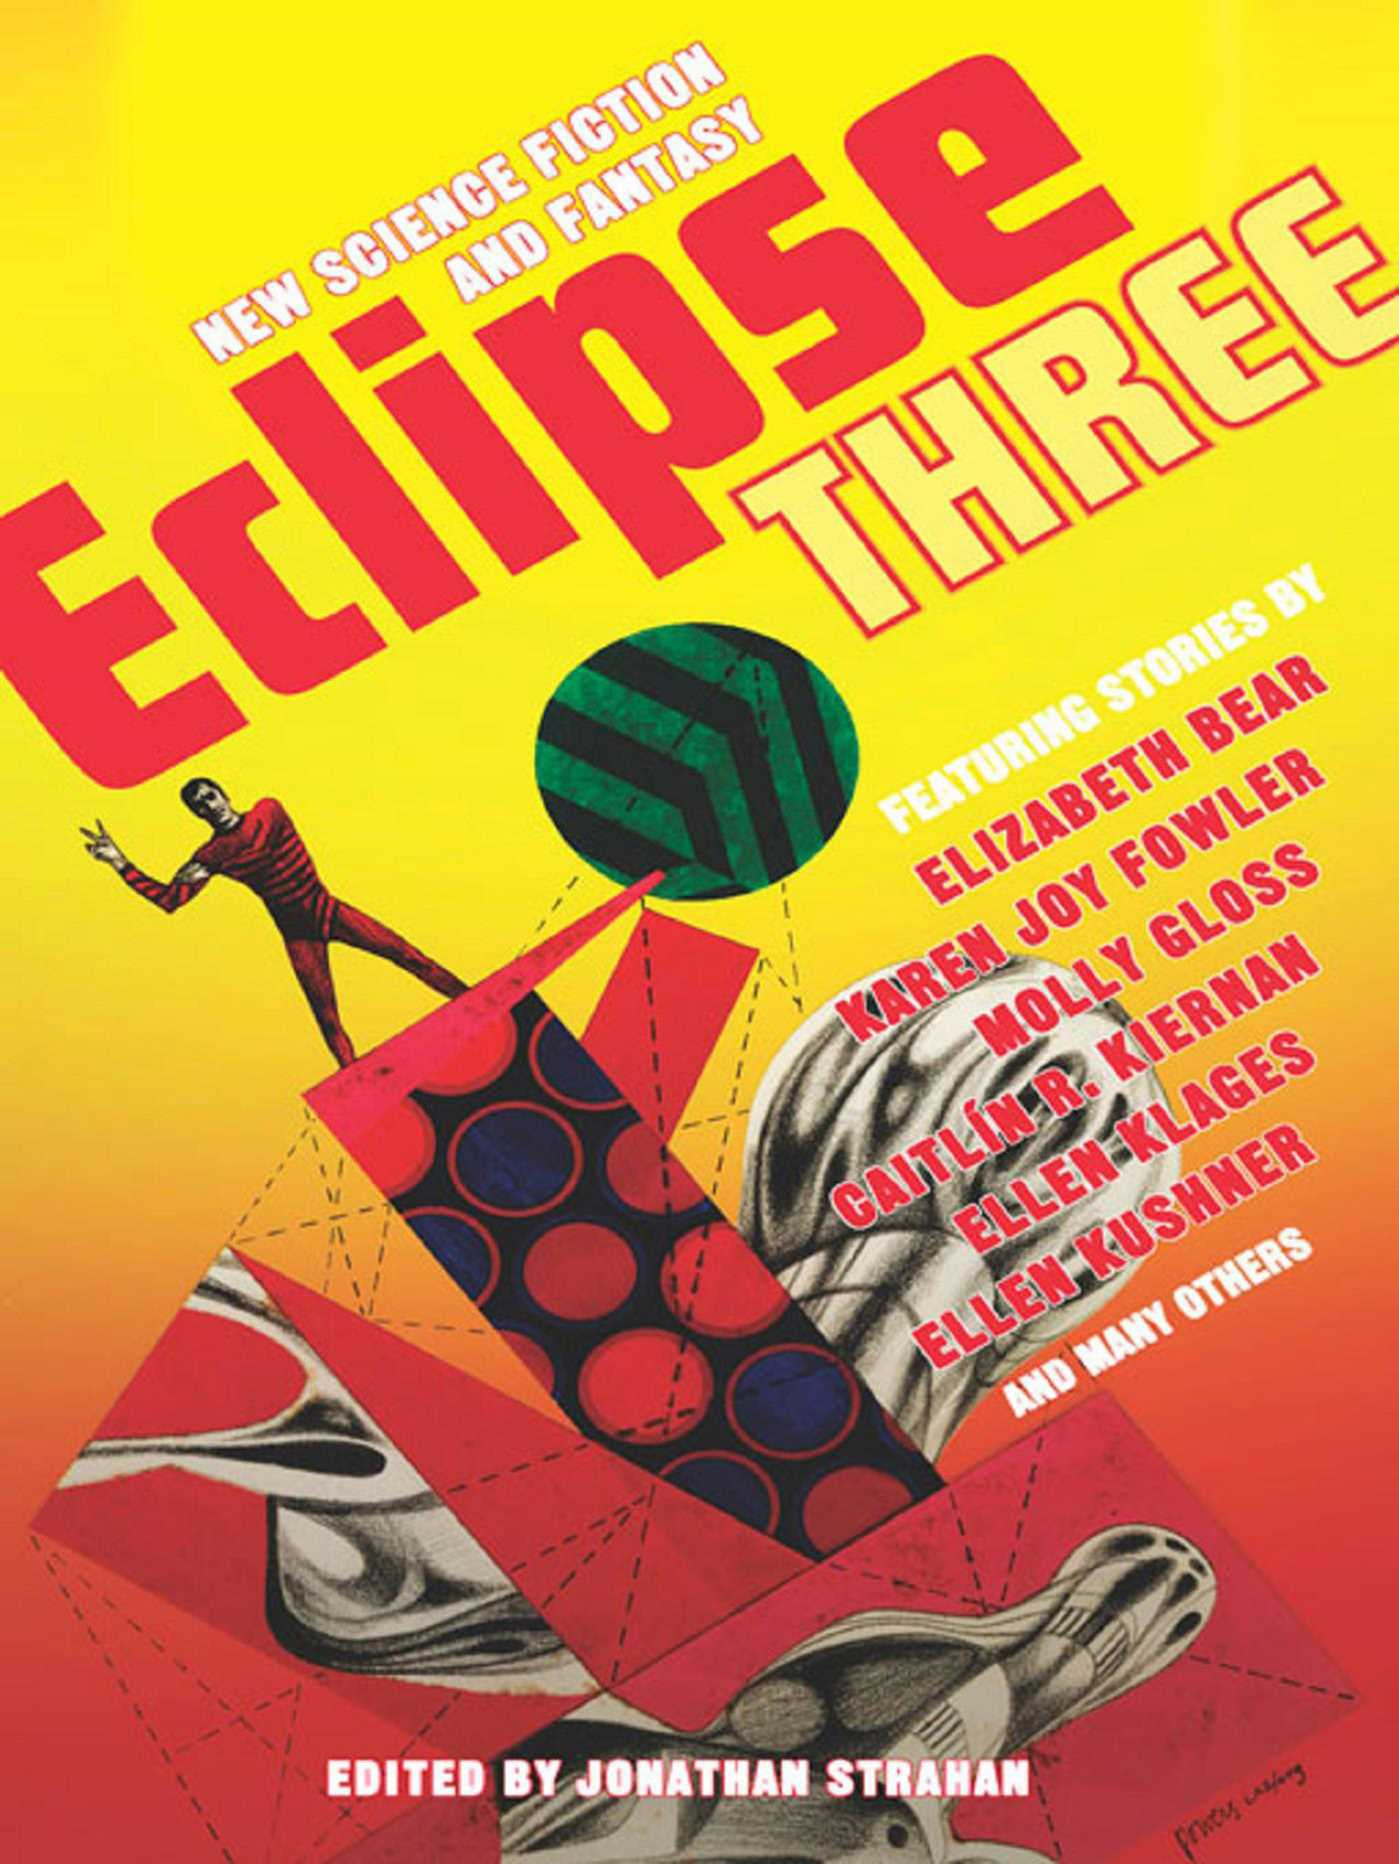 Image result for Jonathan Strahan, ed.: Eclipse Three.